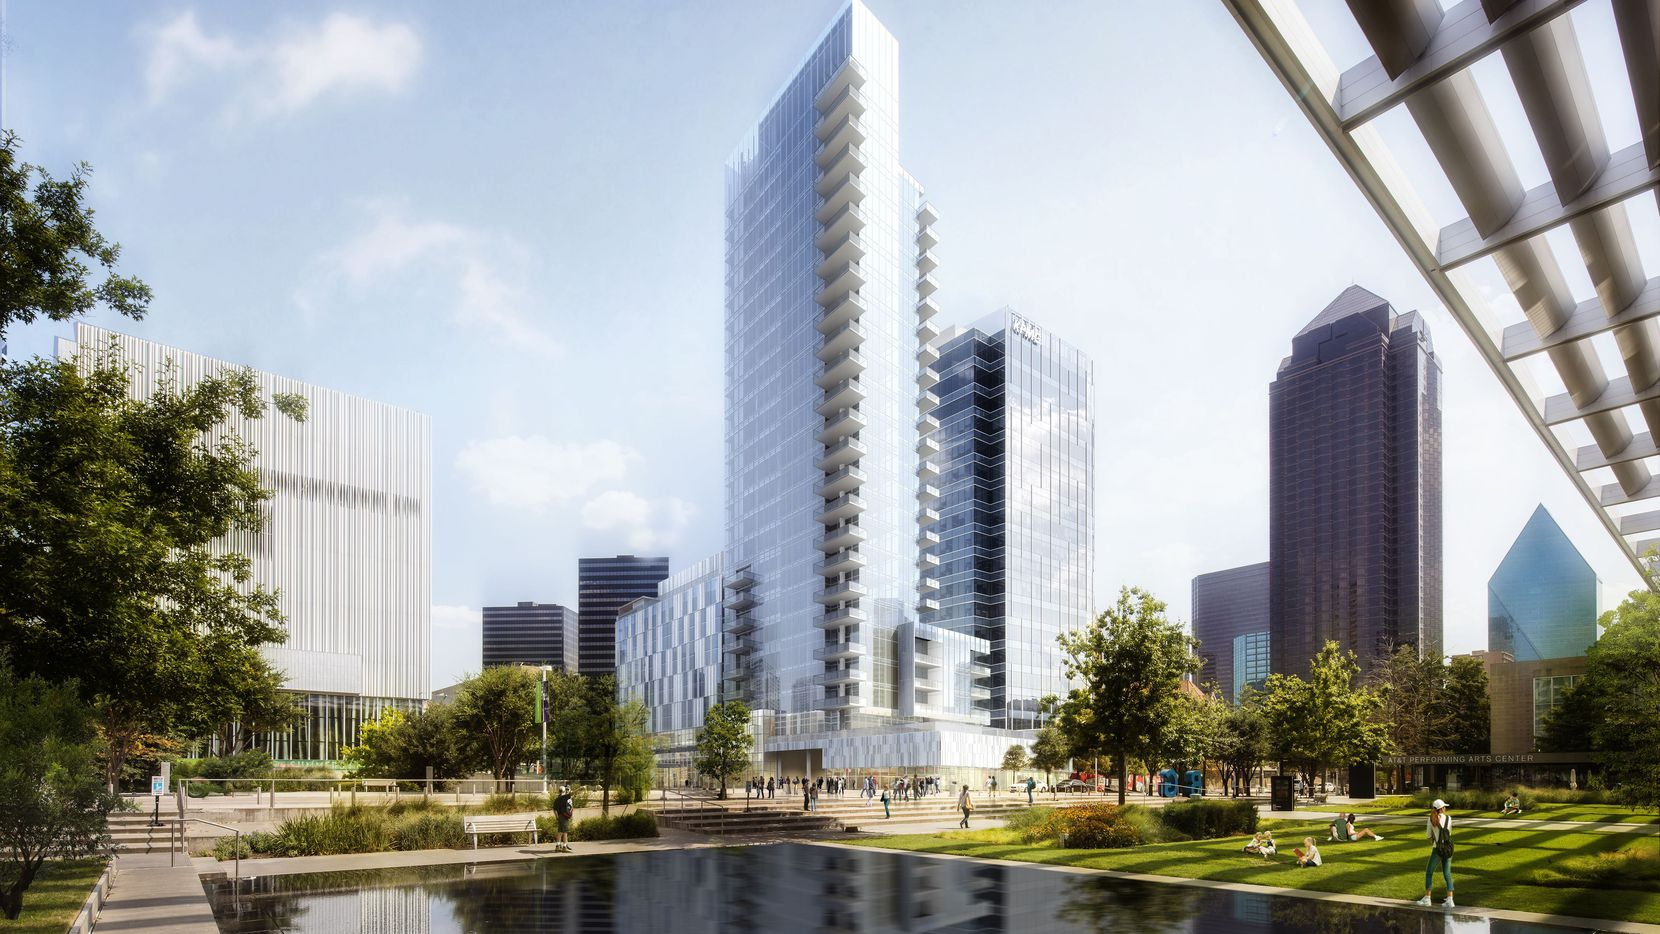 Developer Craig Hall's planned Arts District high-rise will include a luxury hotel and condominium units between Ross Avenue and Flora Street.